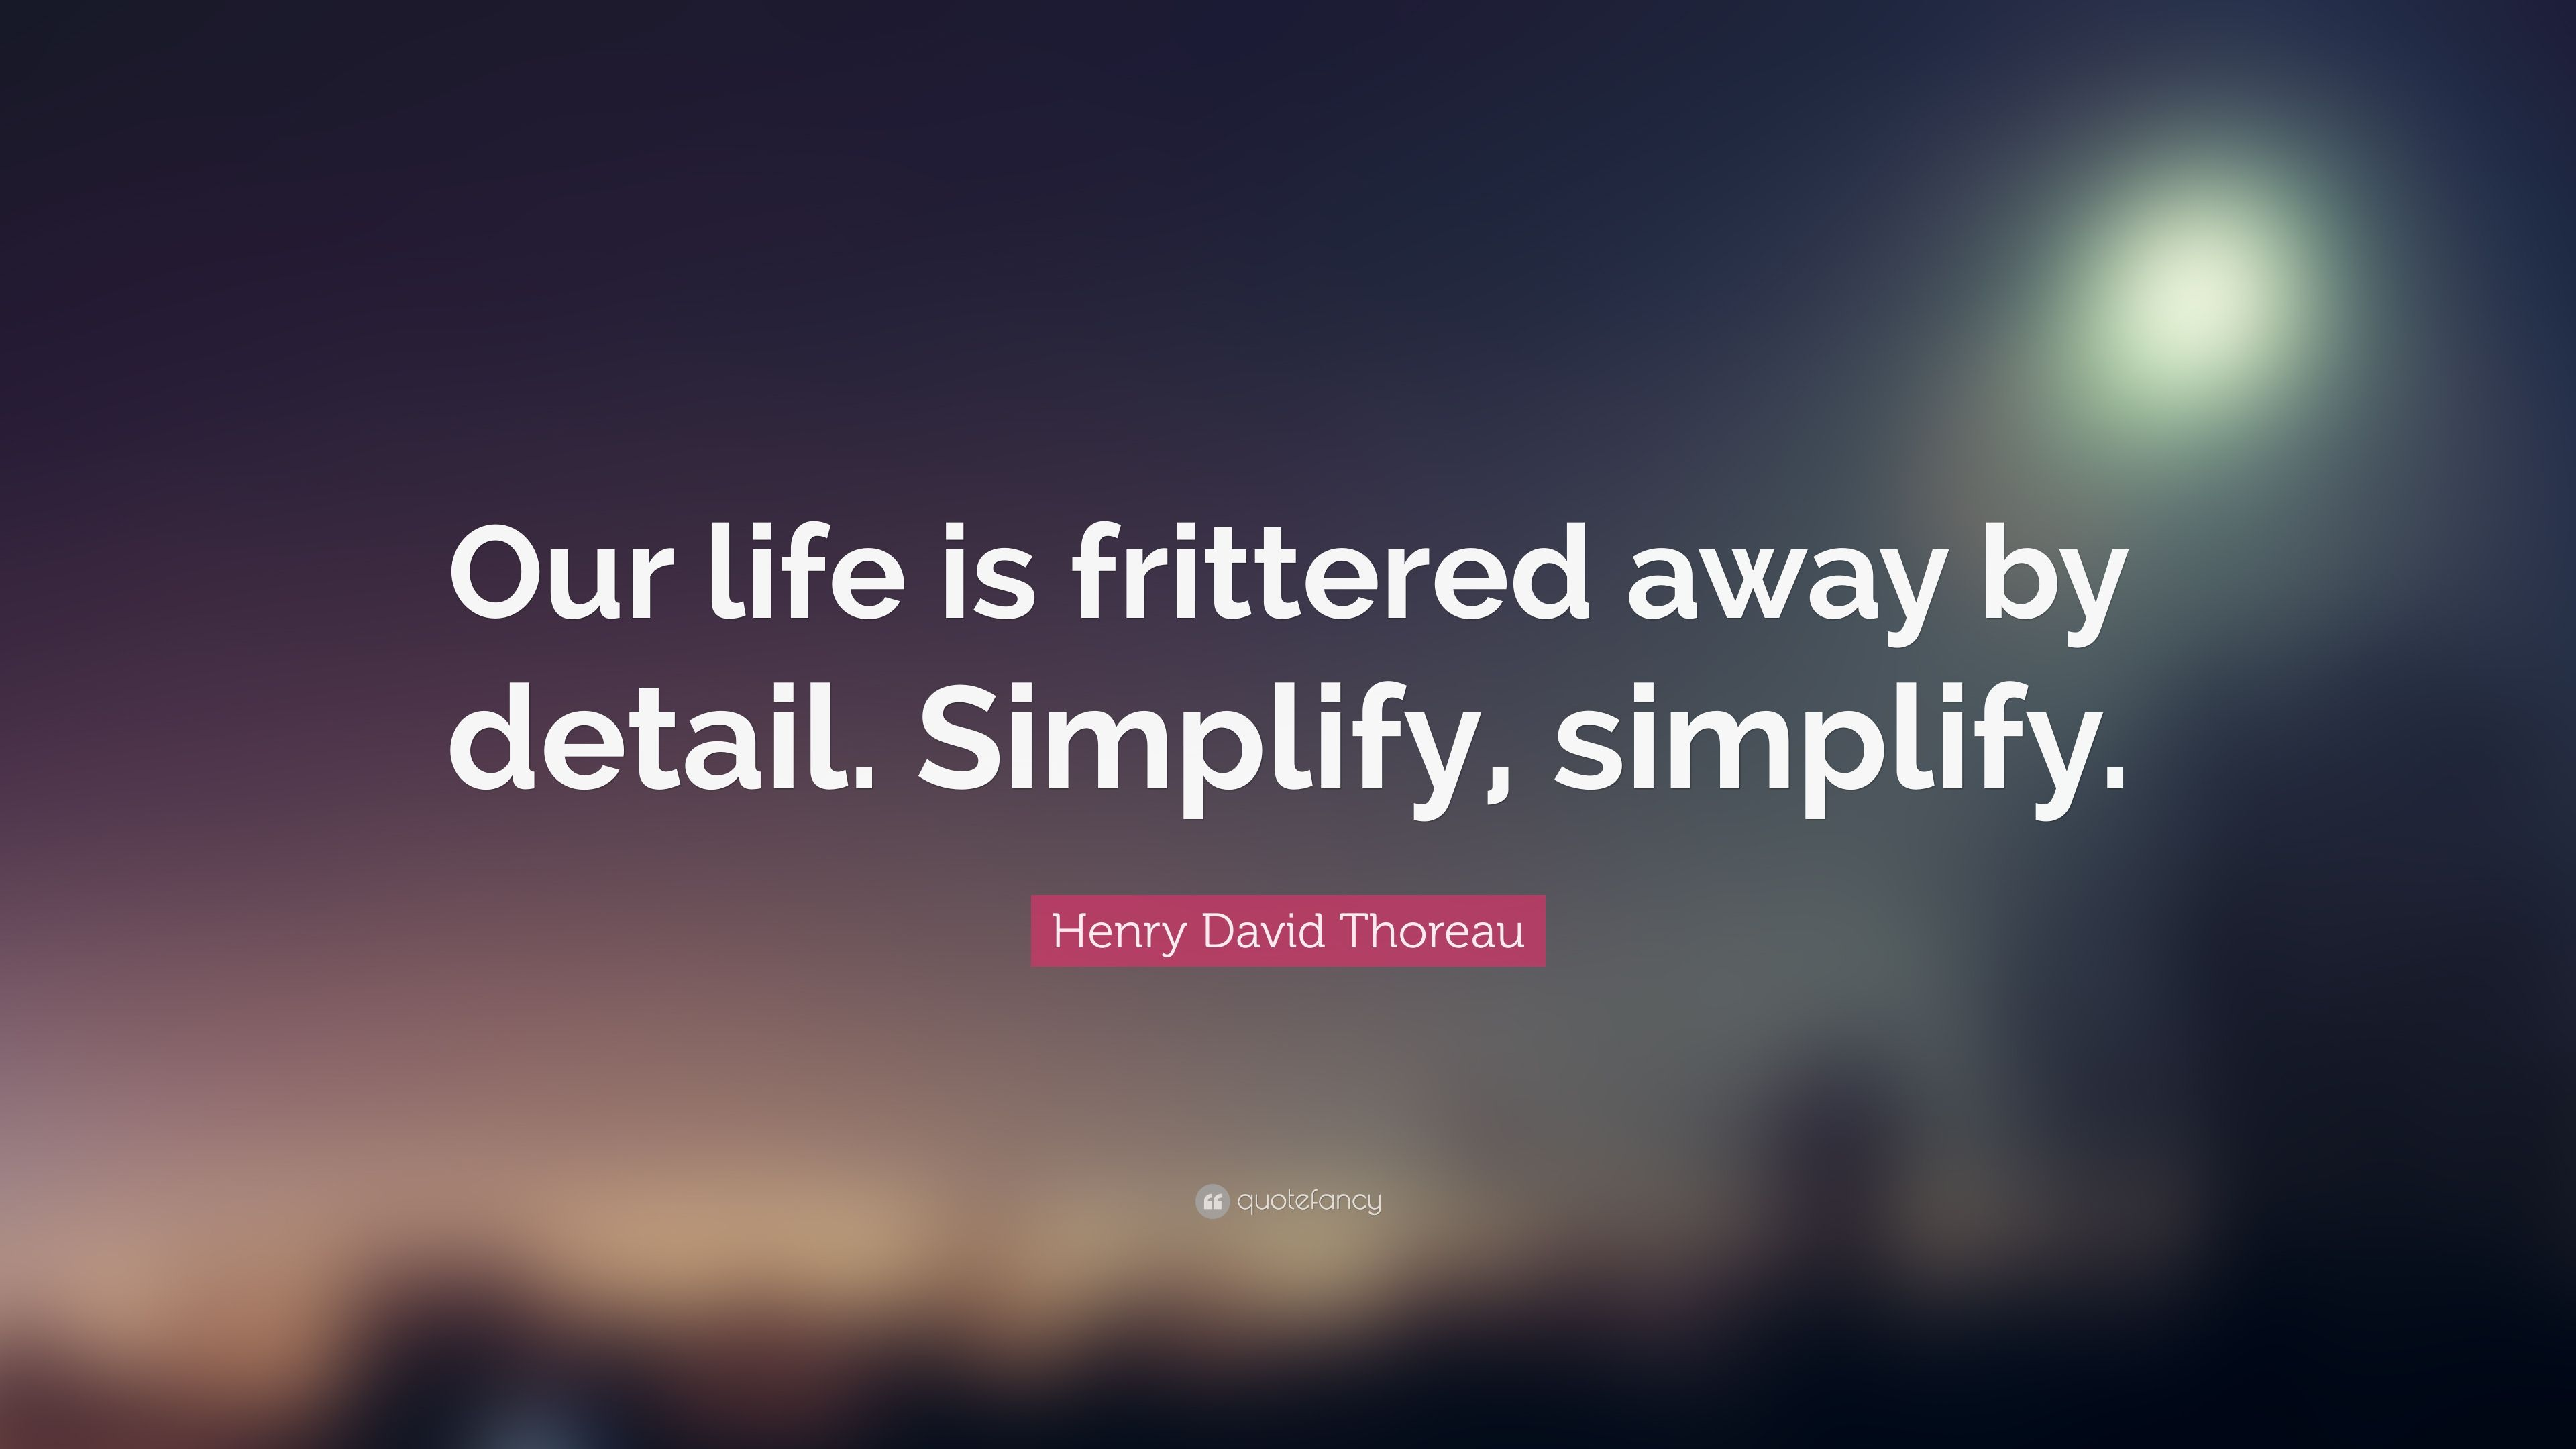 our life is frittered away by detail simplify simplify Henry david thoreau our life is frittered away by detail simplify, simplify.